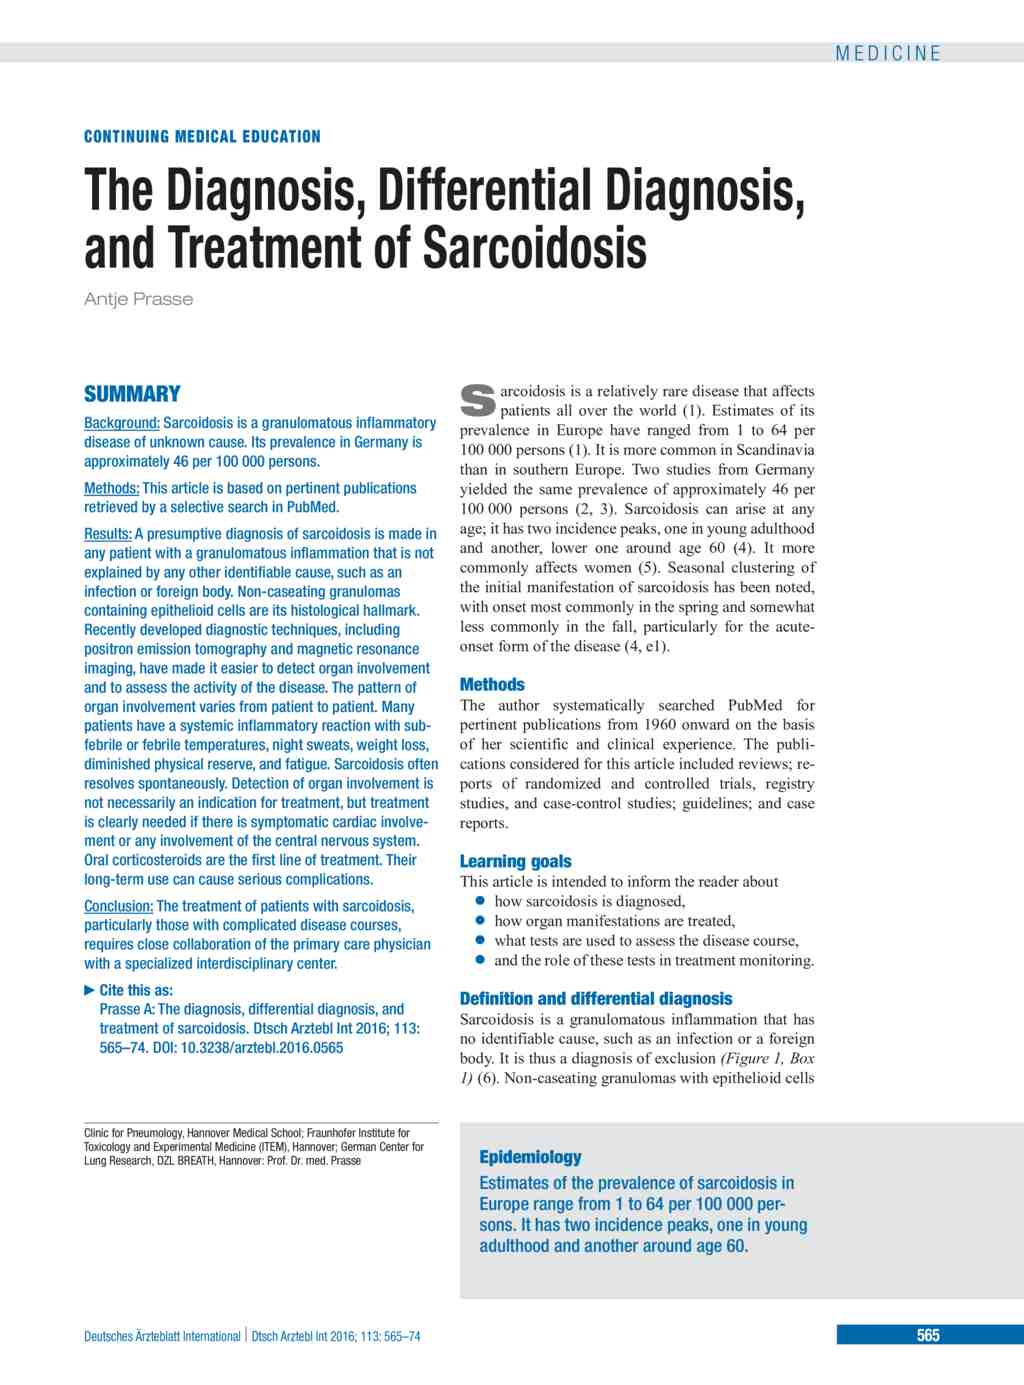 The Diagnosis, Differential Diagnosis, and Treatment of Sarcoidosis